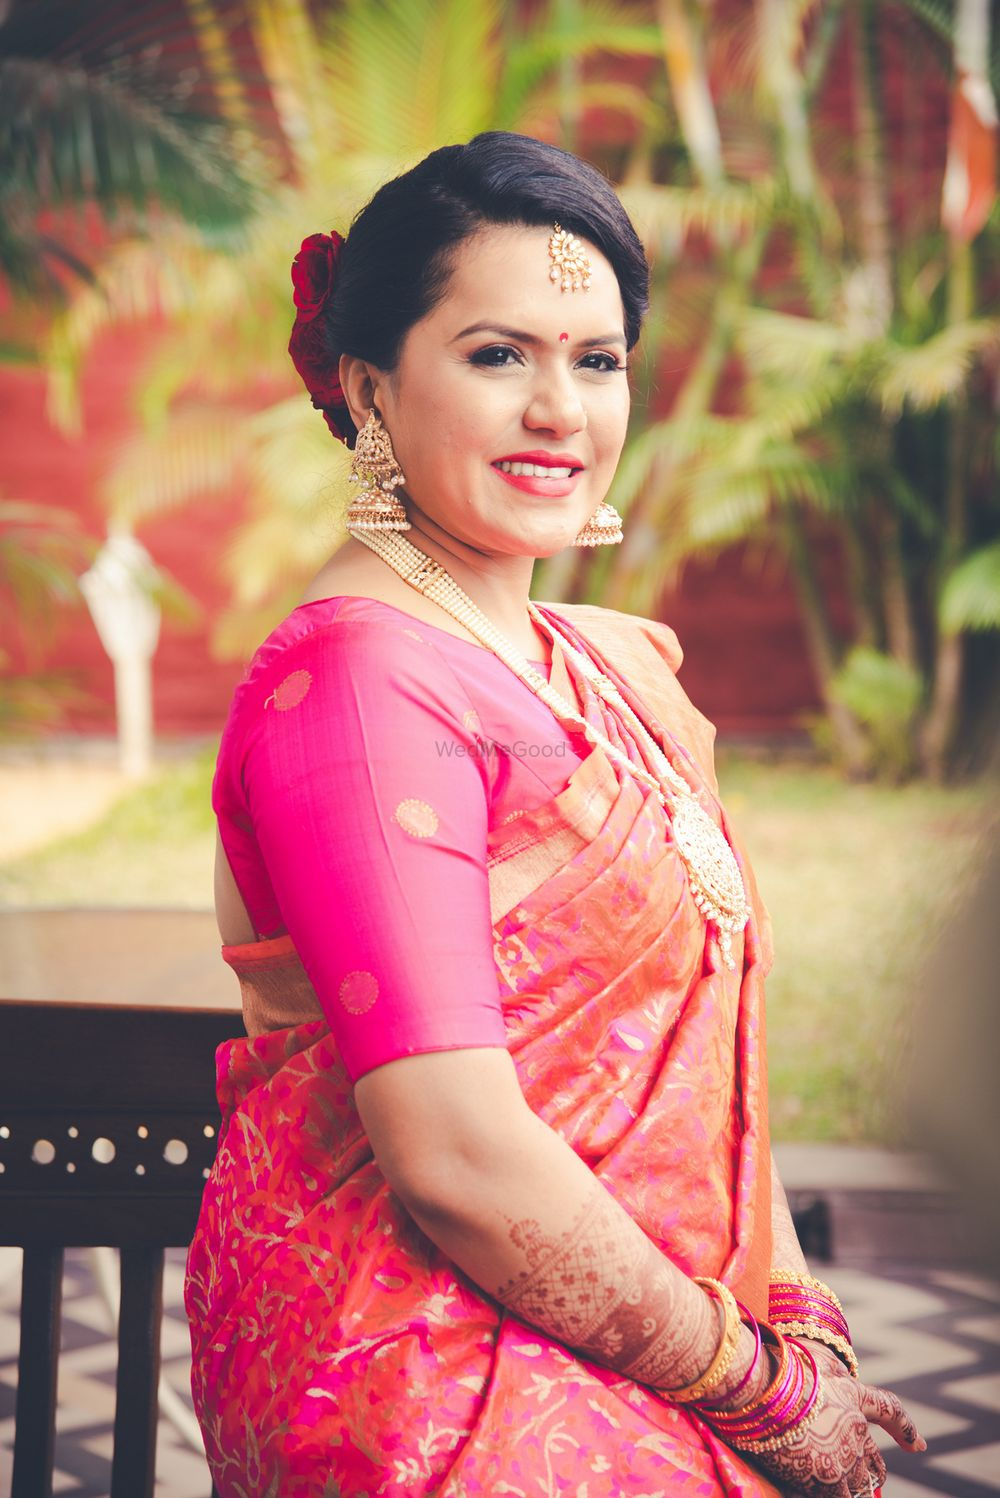 Photo From Sailis wedding album - By Poonam Lalwani Bridal Hair and Makeup Artist